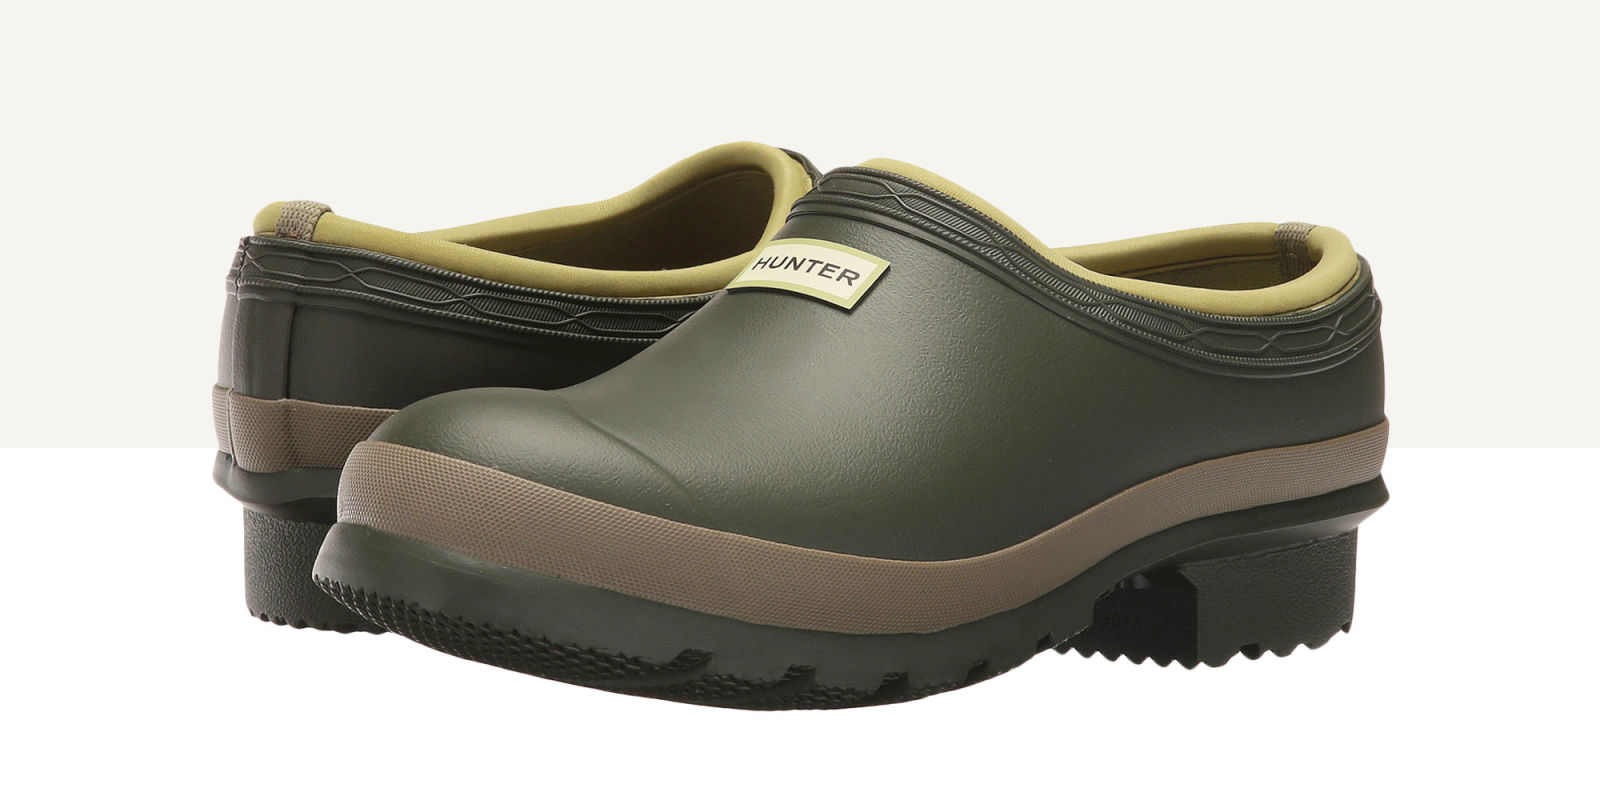 Gardening in style: garden shoes for the gardener in you